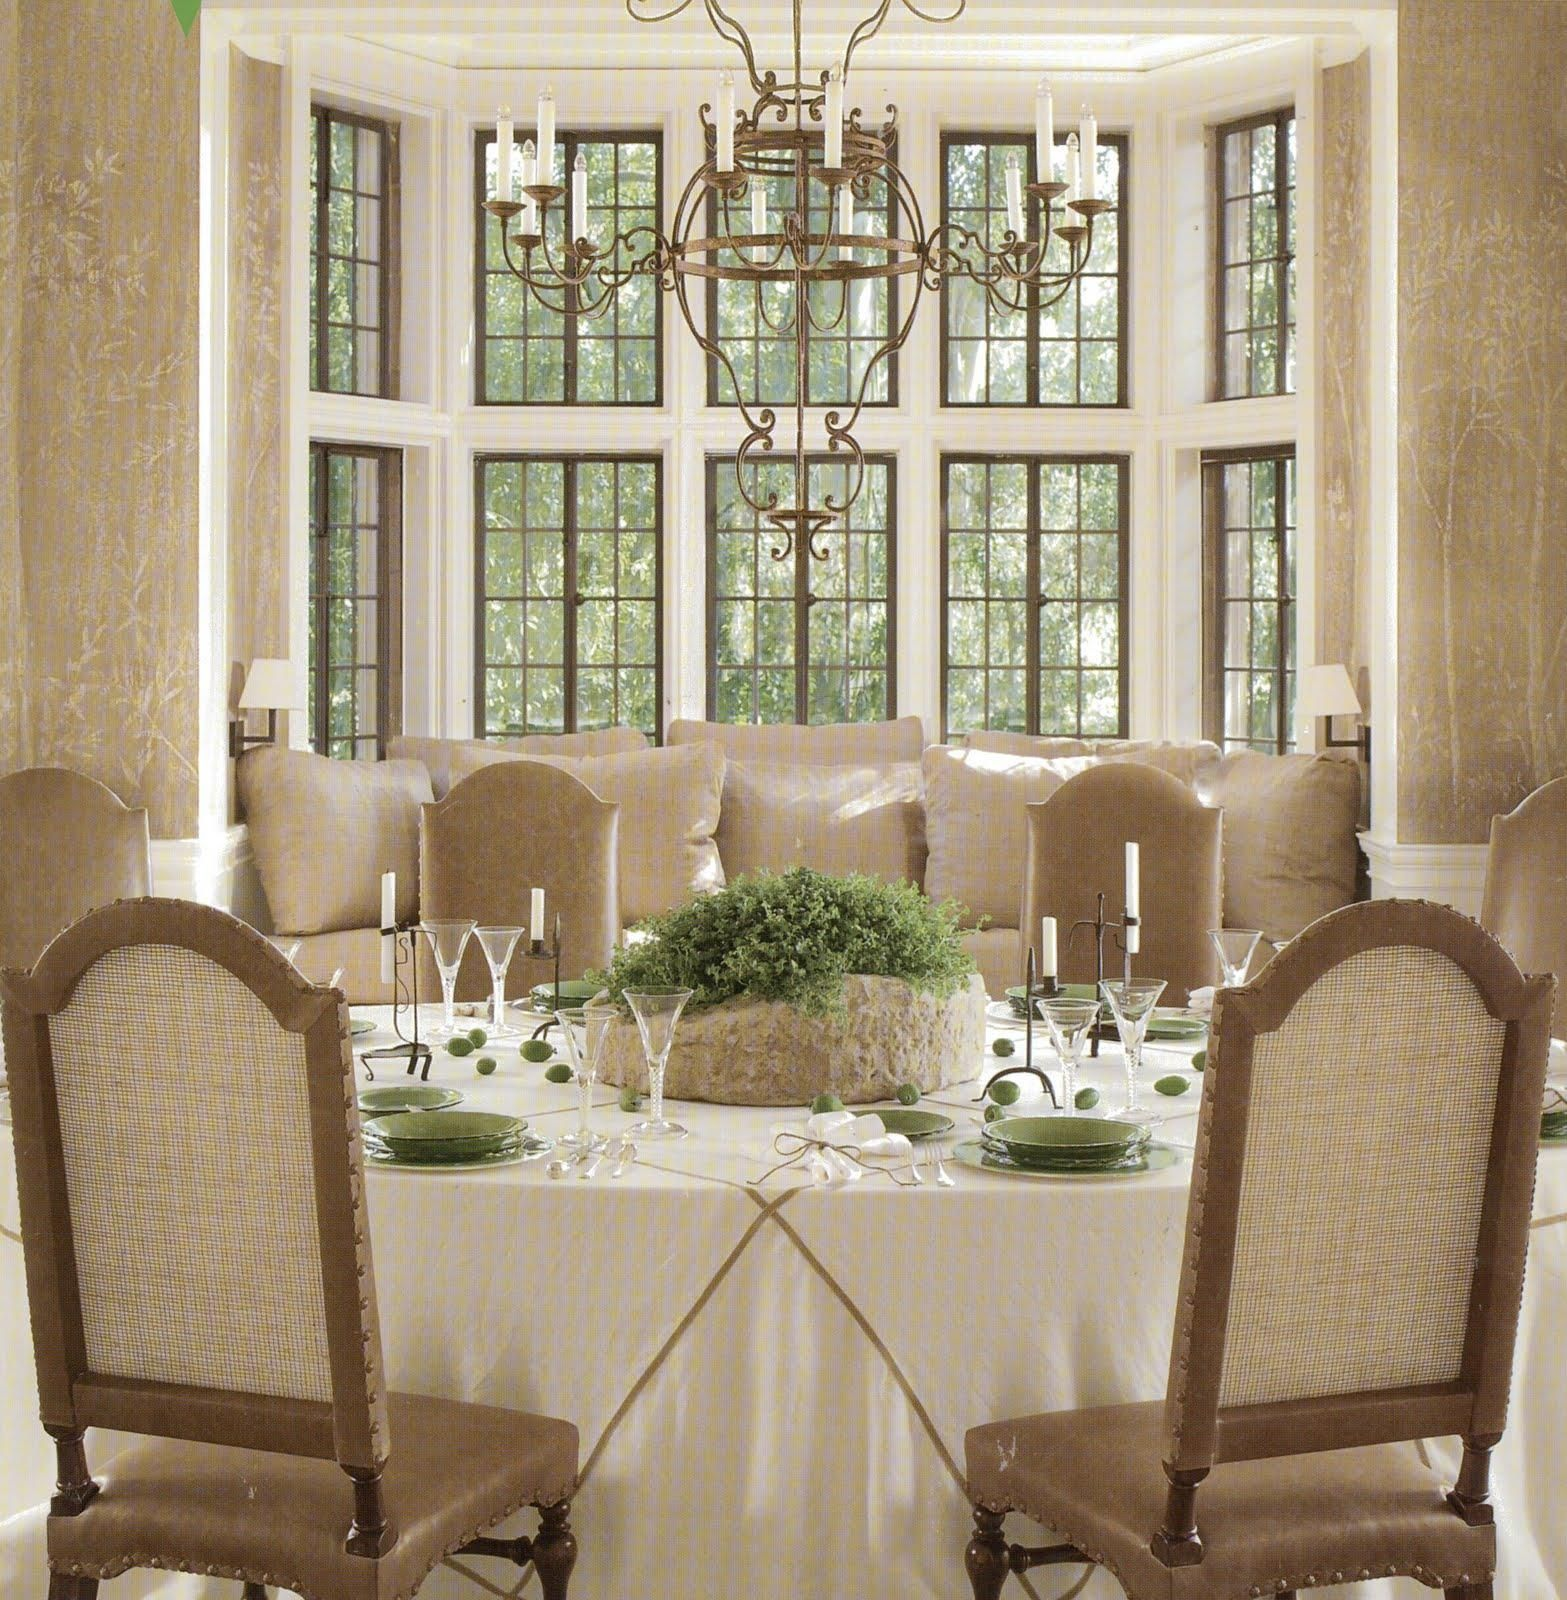 Décor for Formal Dining Room Designs | Dining room windows ...